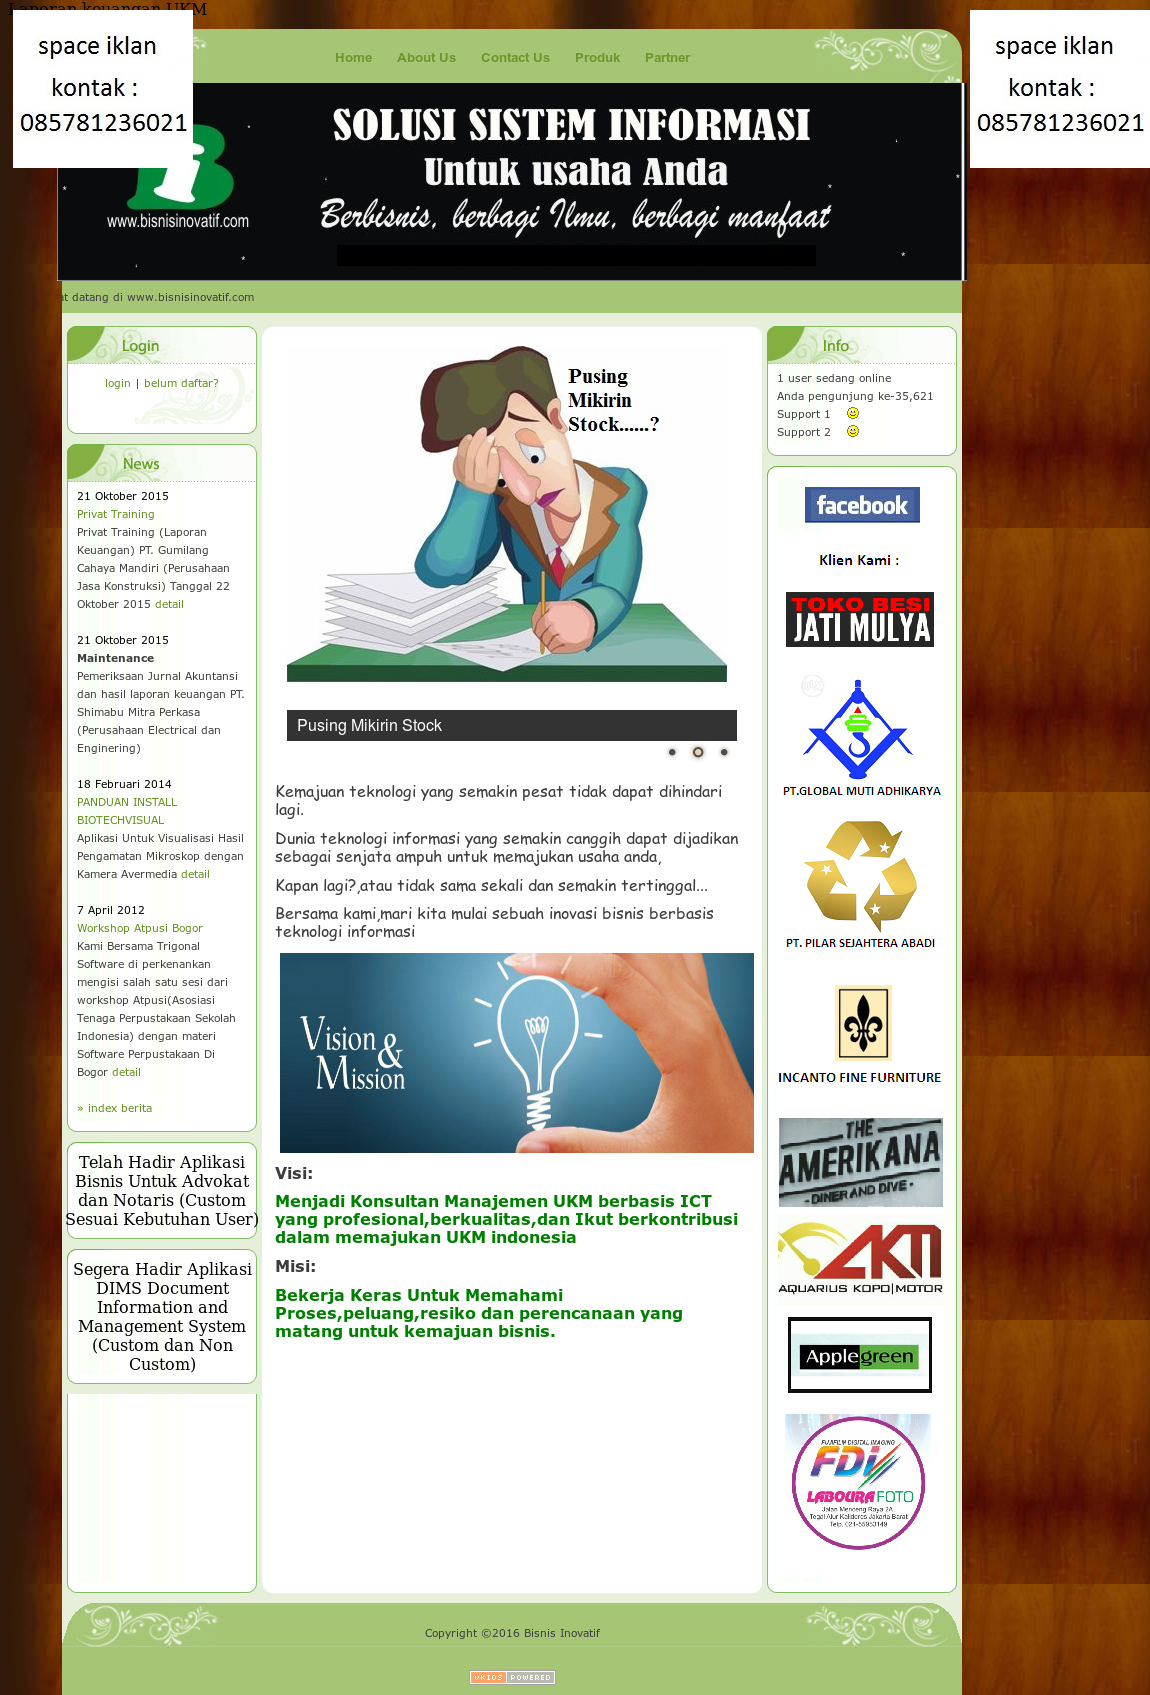 Bisnis Inovatif Solution S Competitors Revenue Number Of Employees Funding Acquisitions News Owler Company Profile